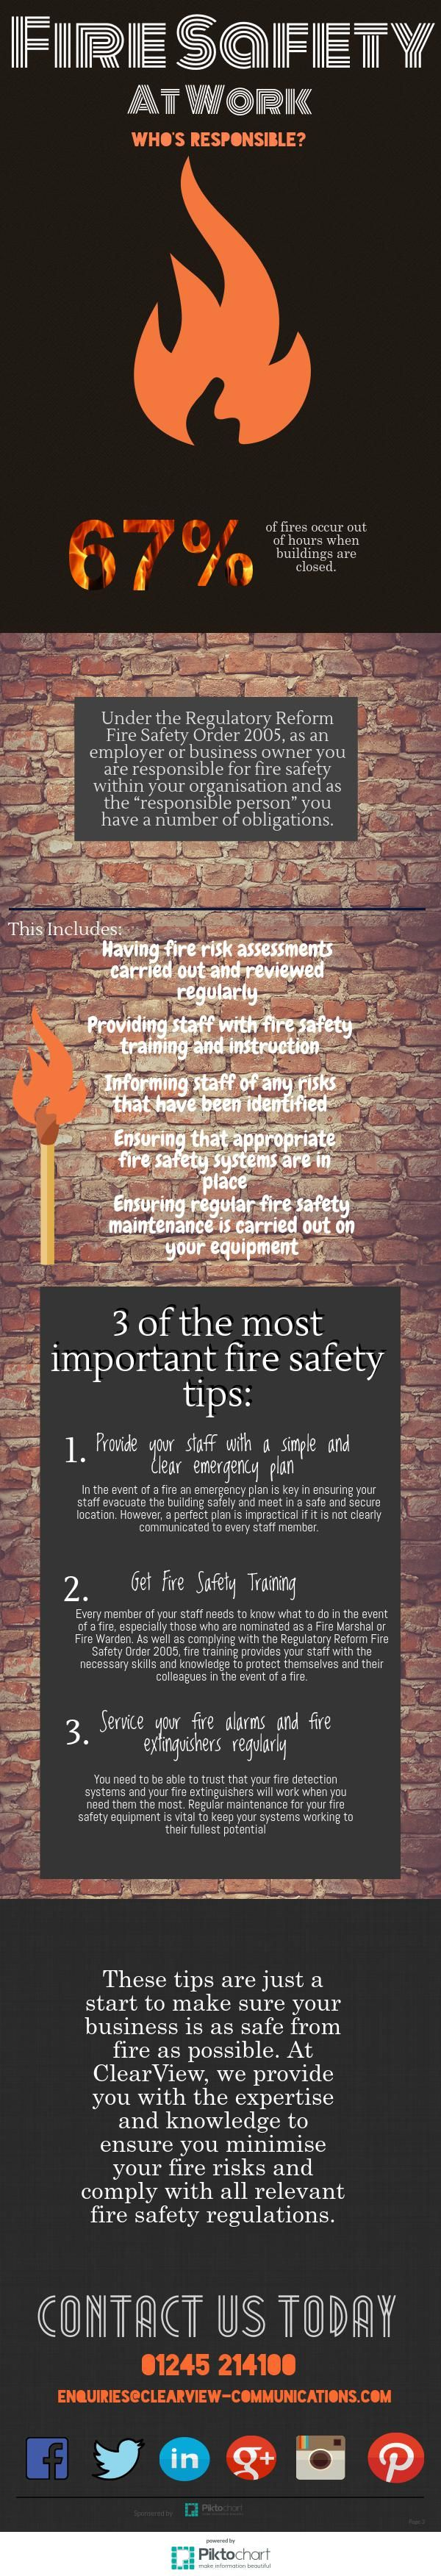 Fire Safety At Work